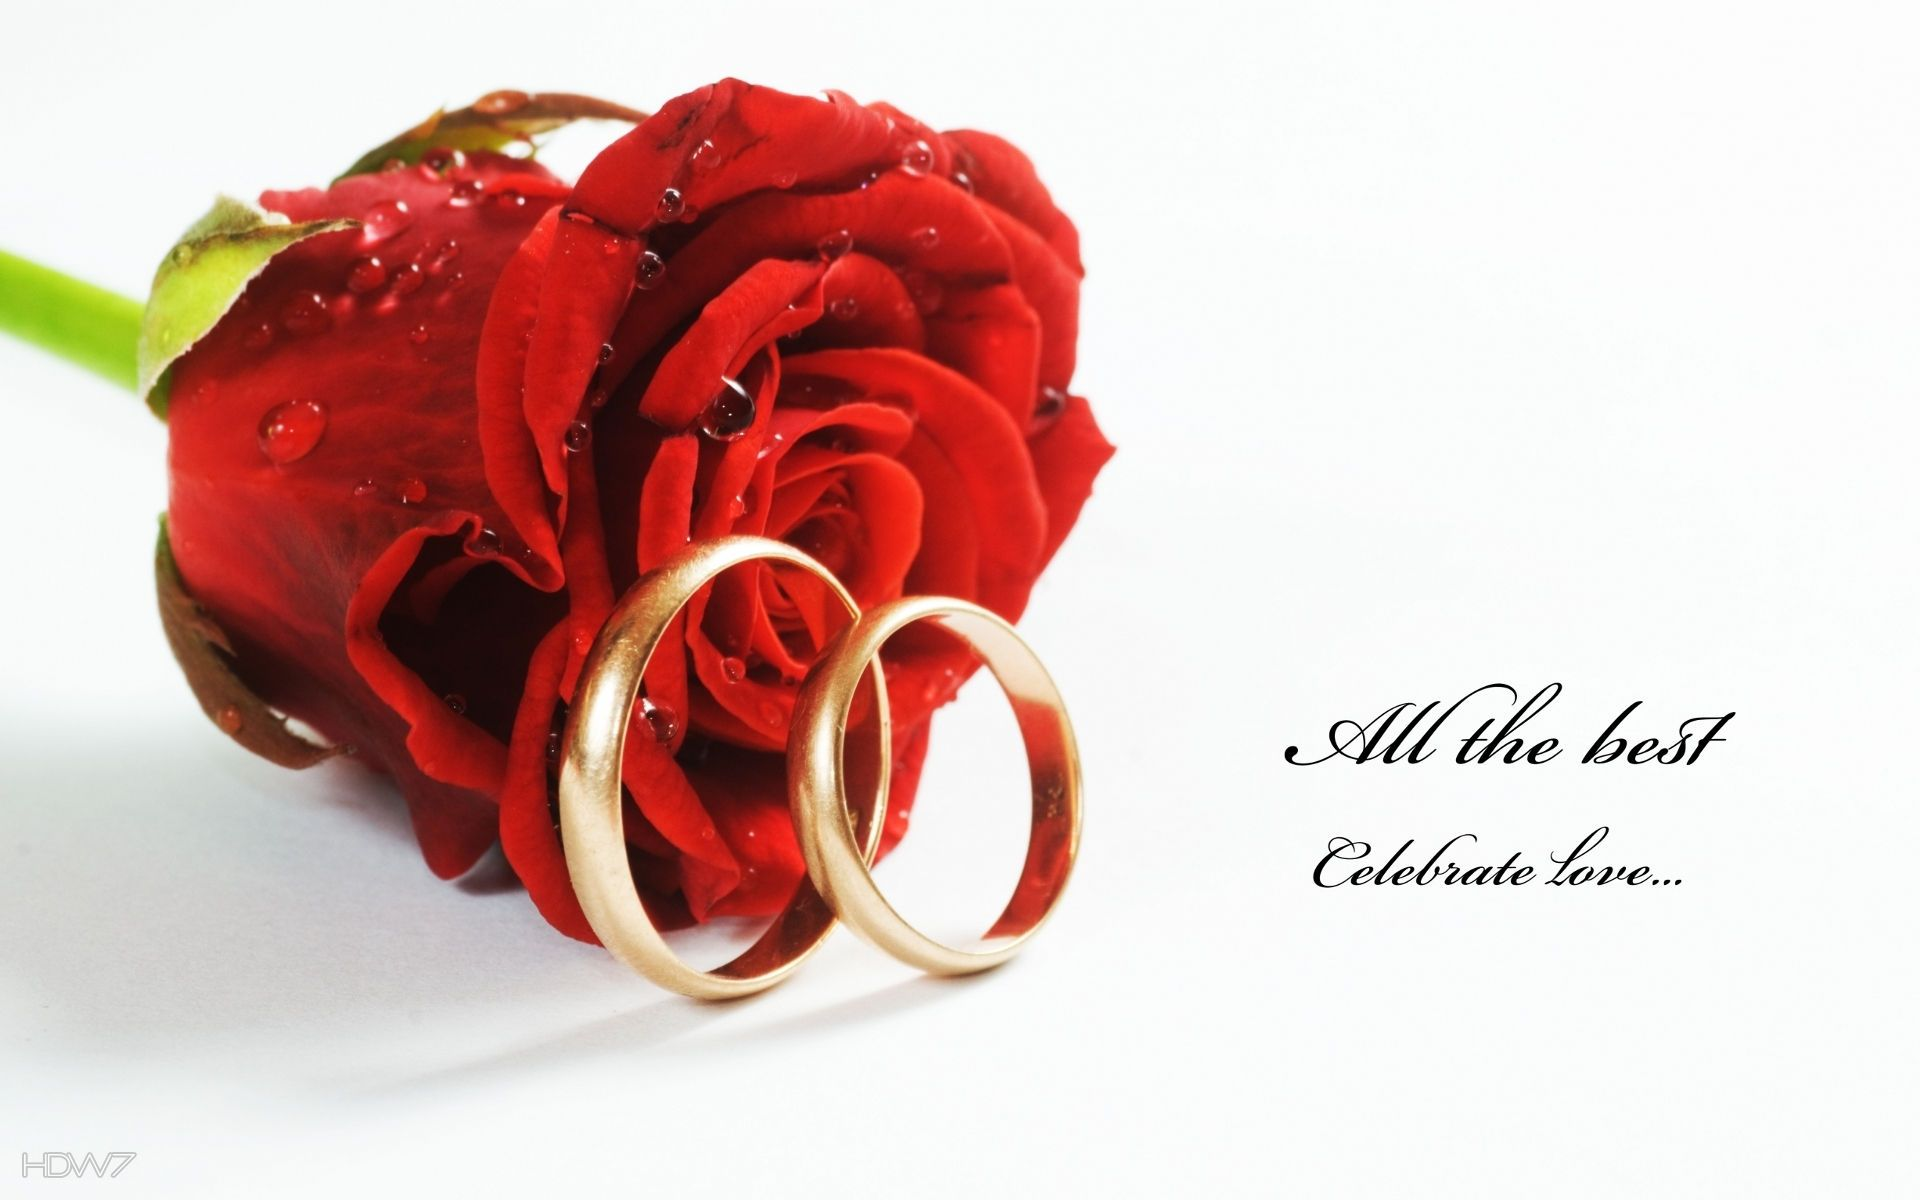 wedding rings red rose flower celebrate love | HD wallpaper gallery #122